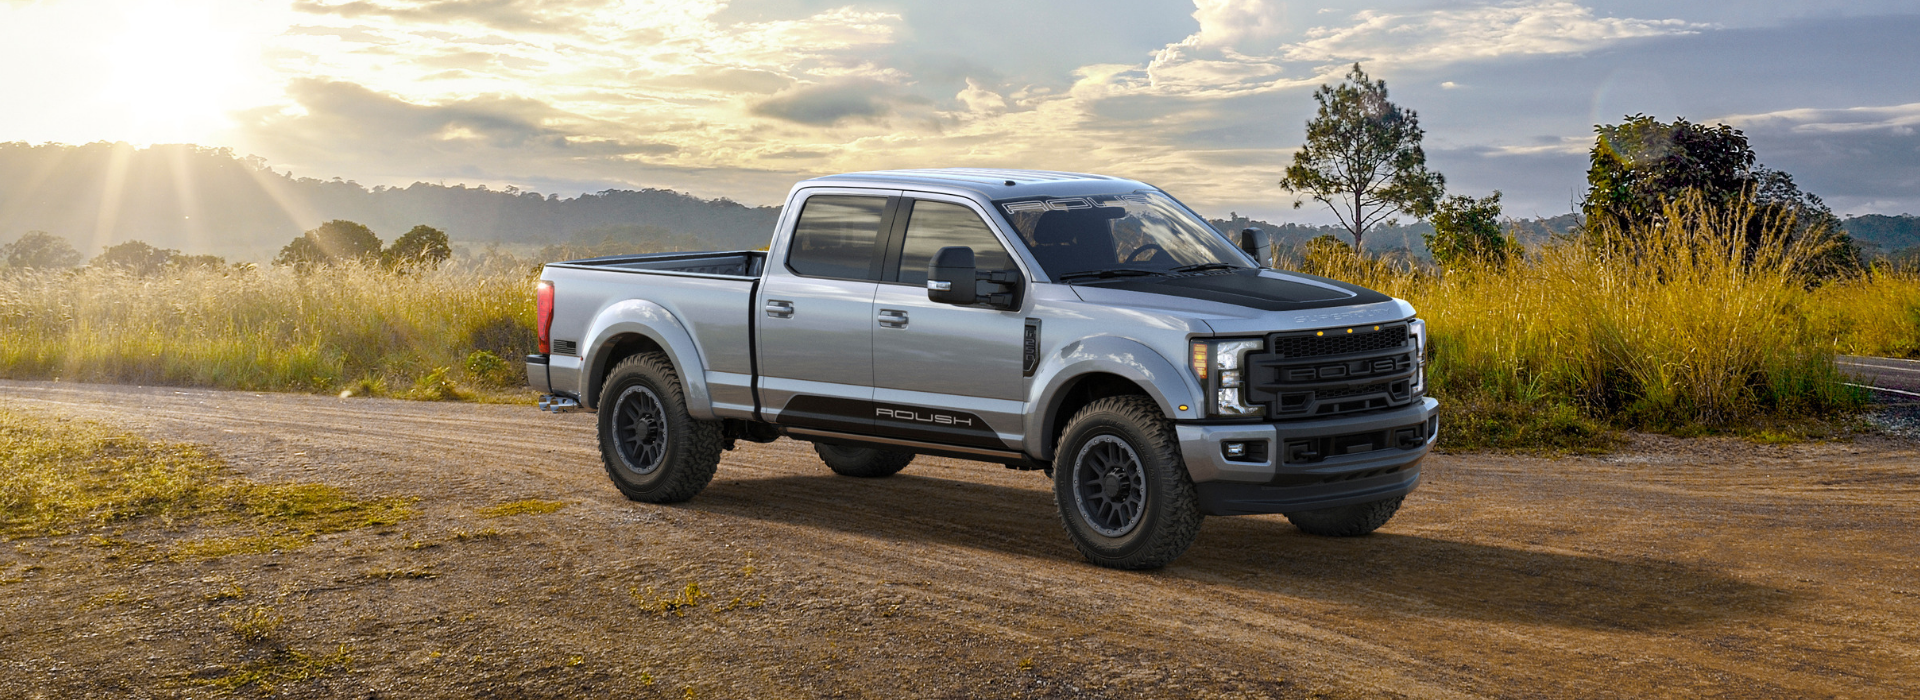 Ford Super Duty Roush truck accessories